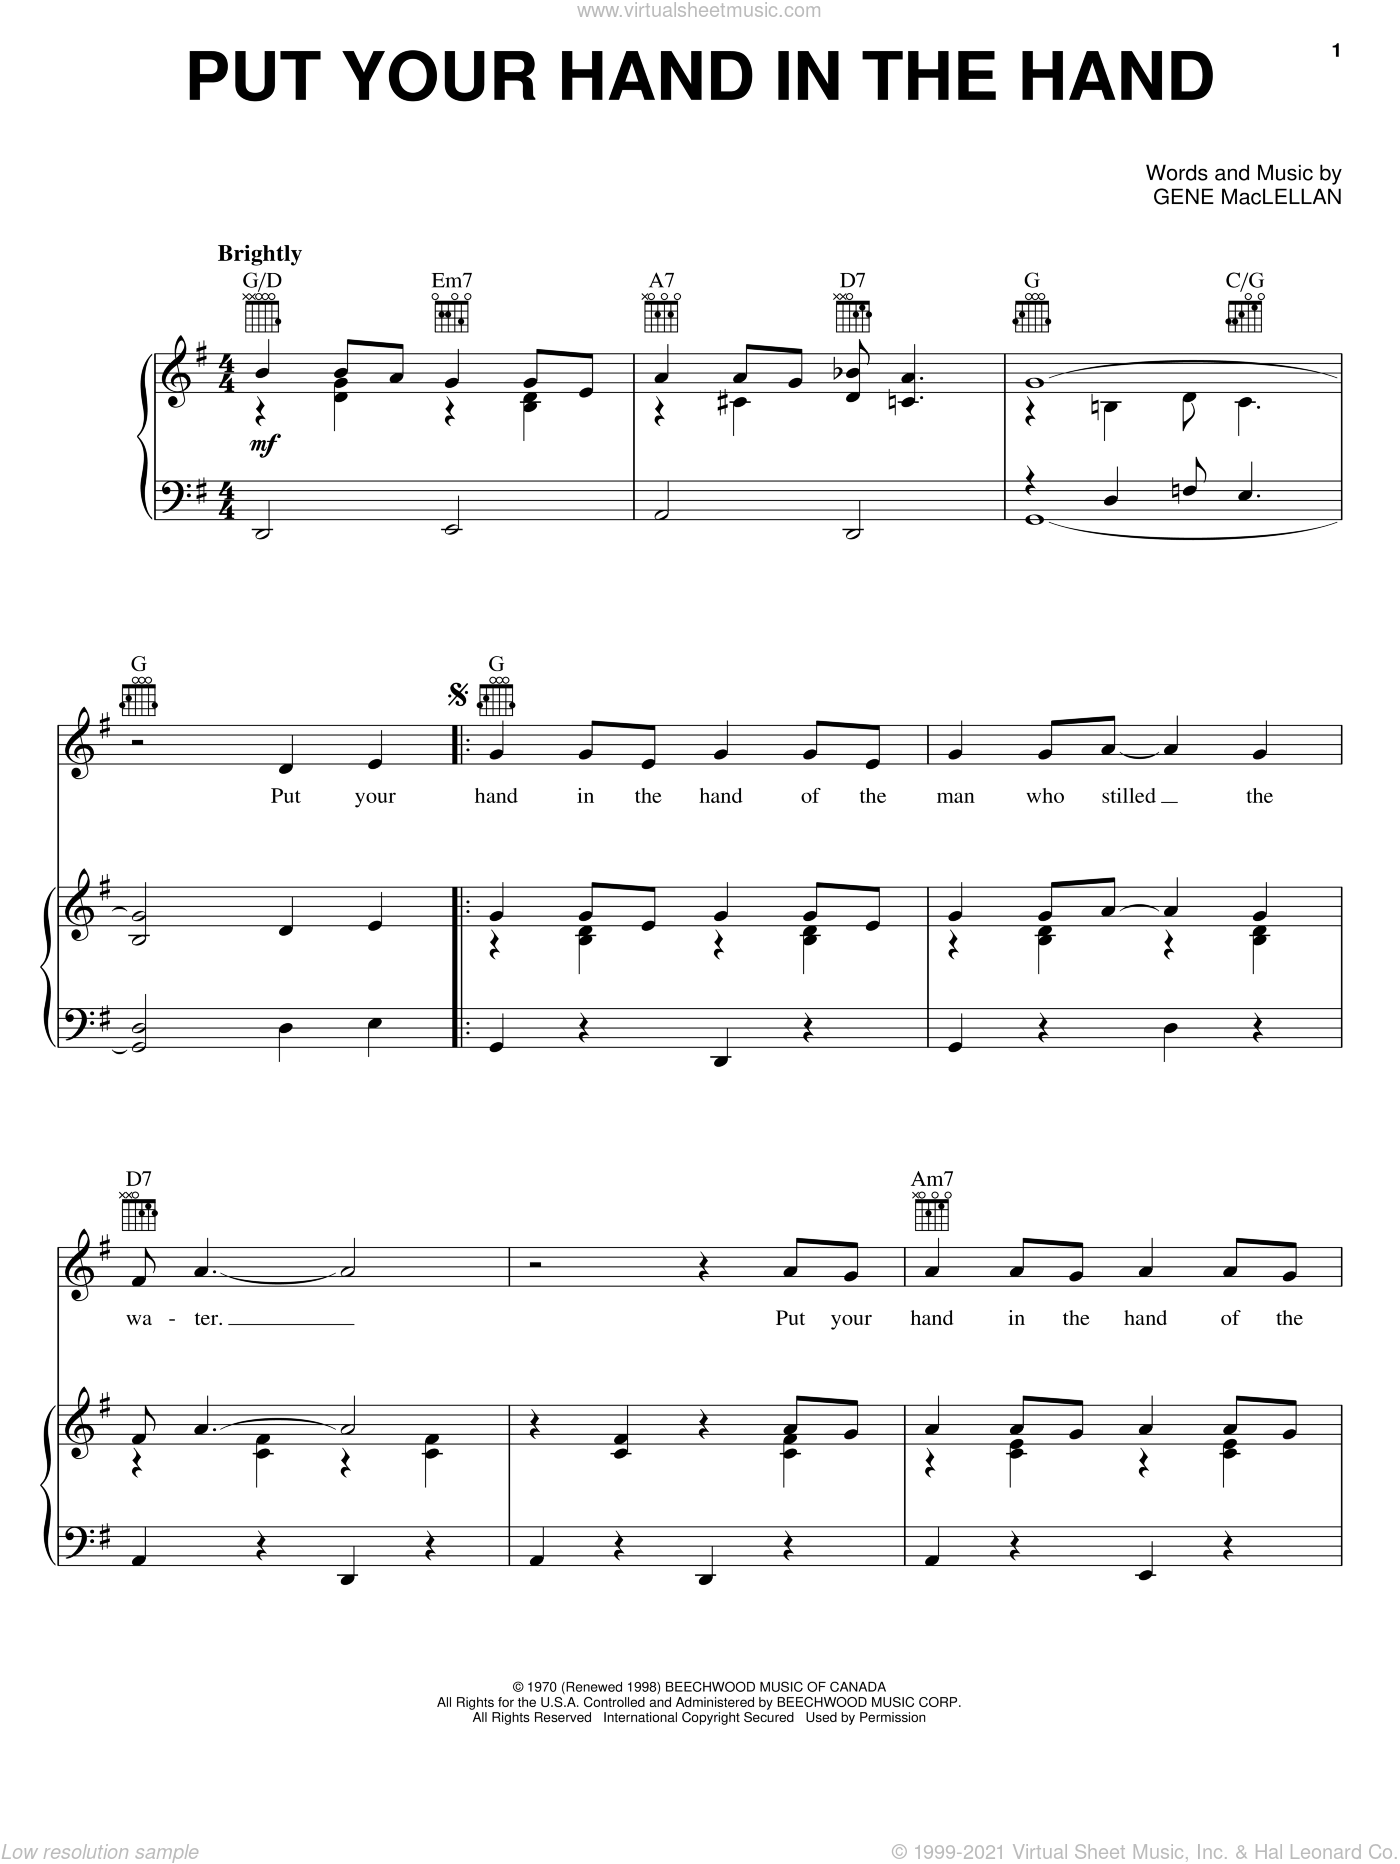 Put Your Hand In The Hand sheet music for voice, piano or guitar by Gene MacLellan